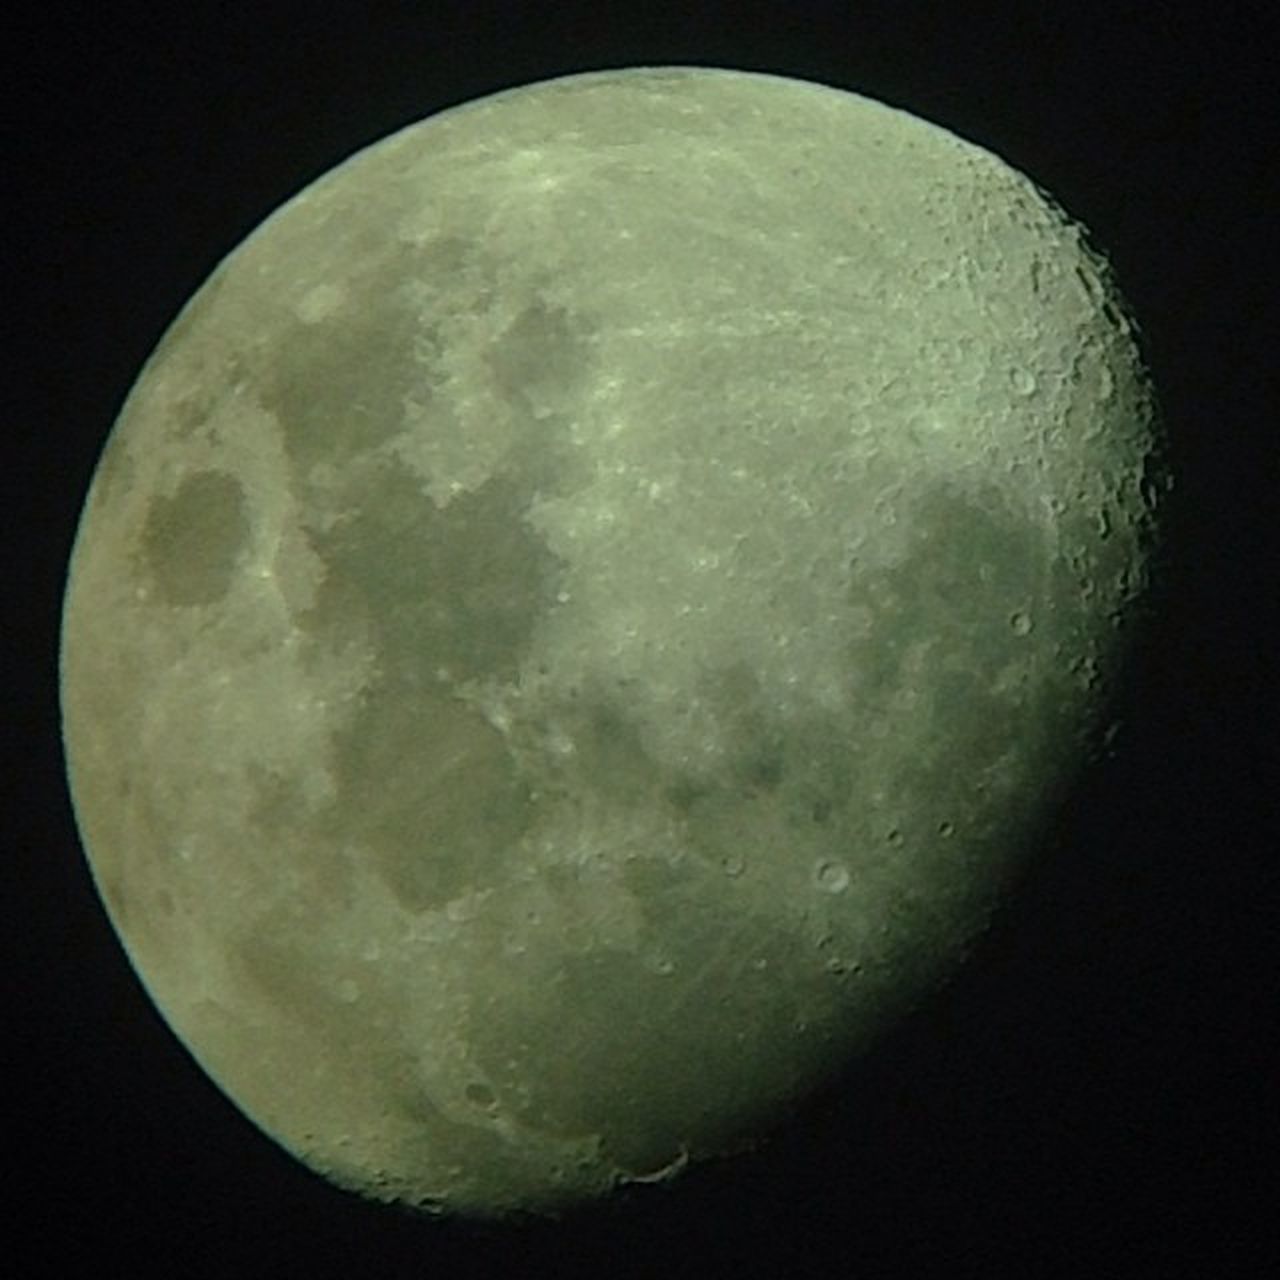 moon, astronomy, night, moon surface, beauty in nature, nature, no people, close-up, scenics, outdoors, space, sky